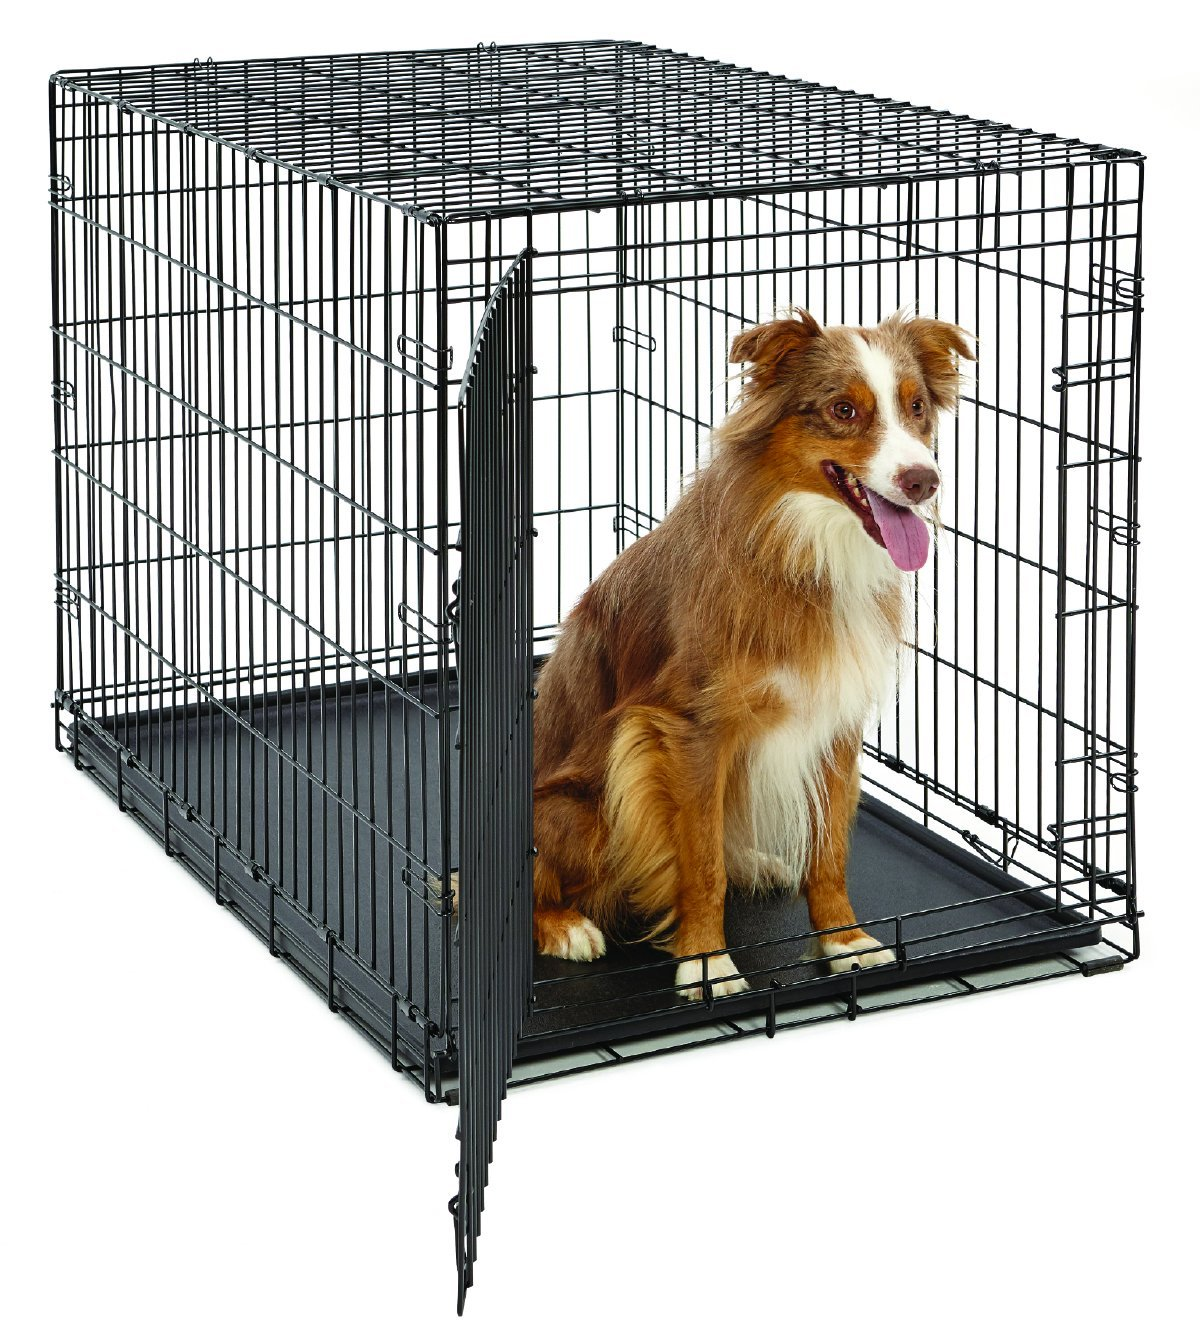 Midwest Folding Dog Crate | Retriever Dog Crate | Midwest Dog Crates